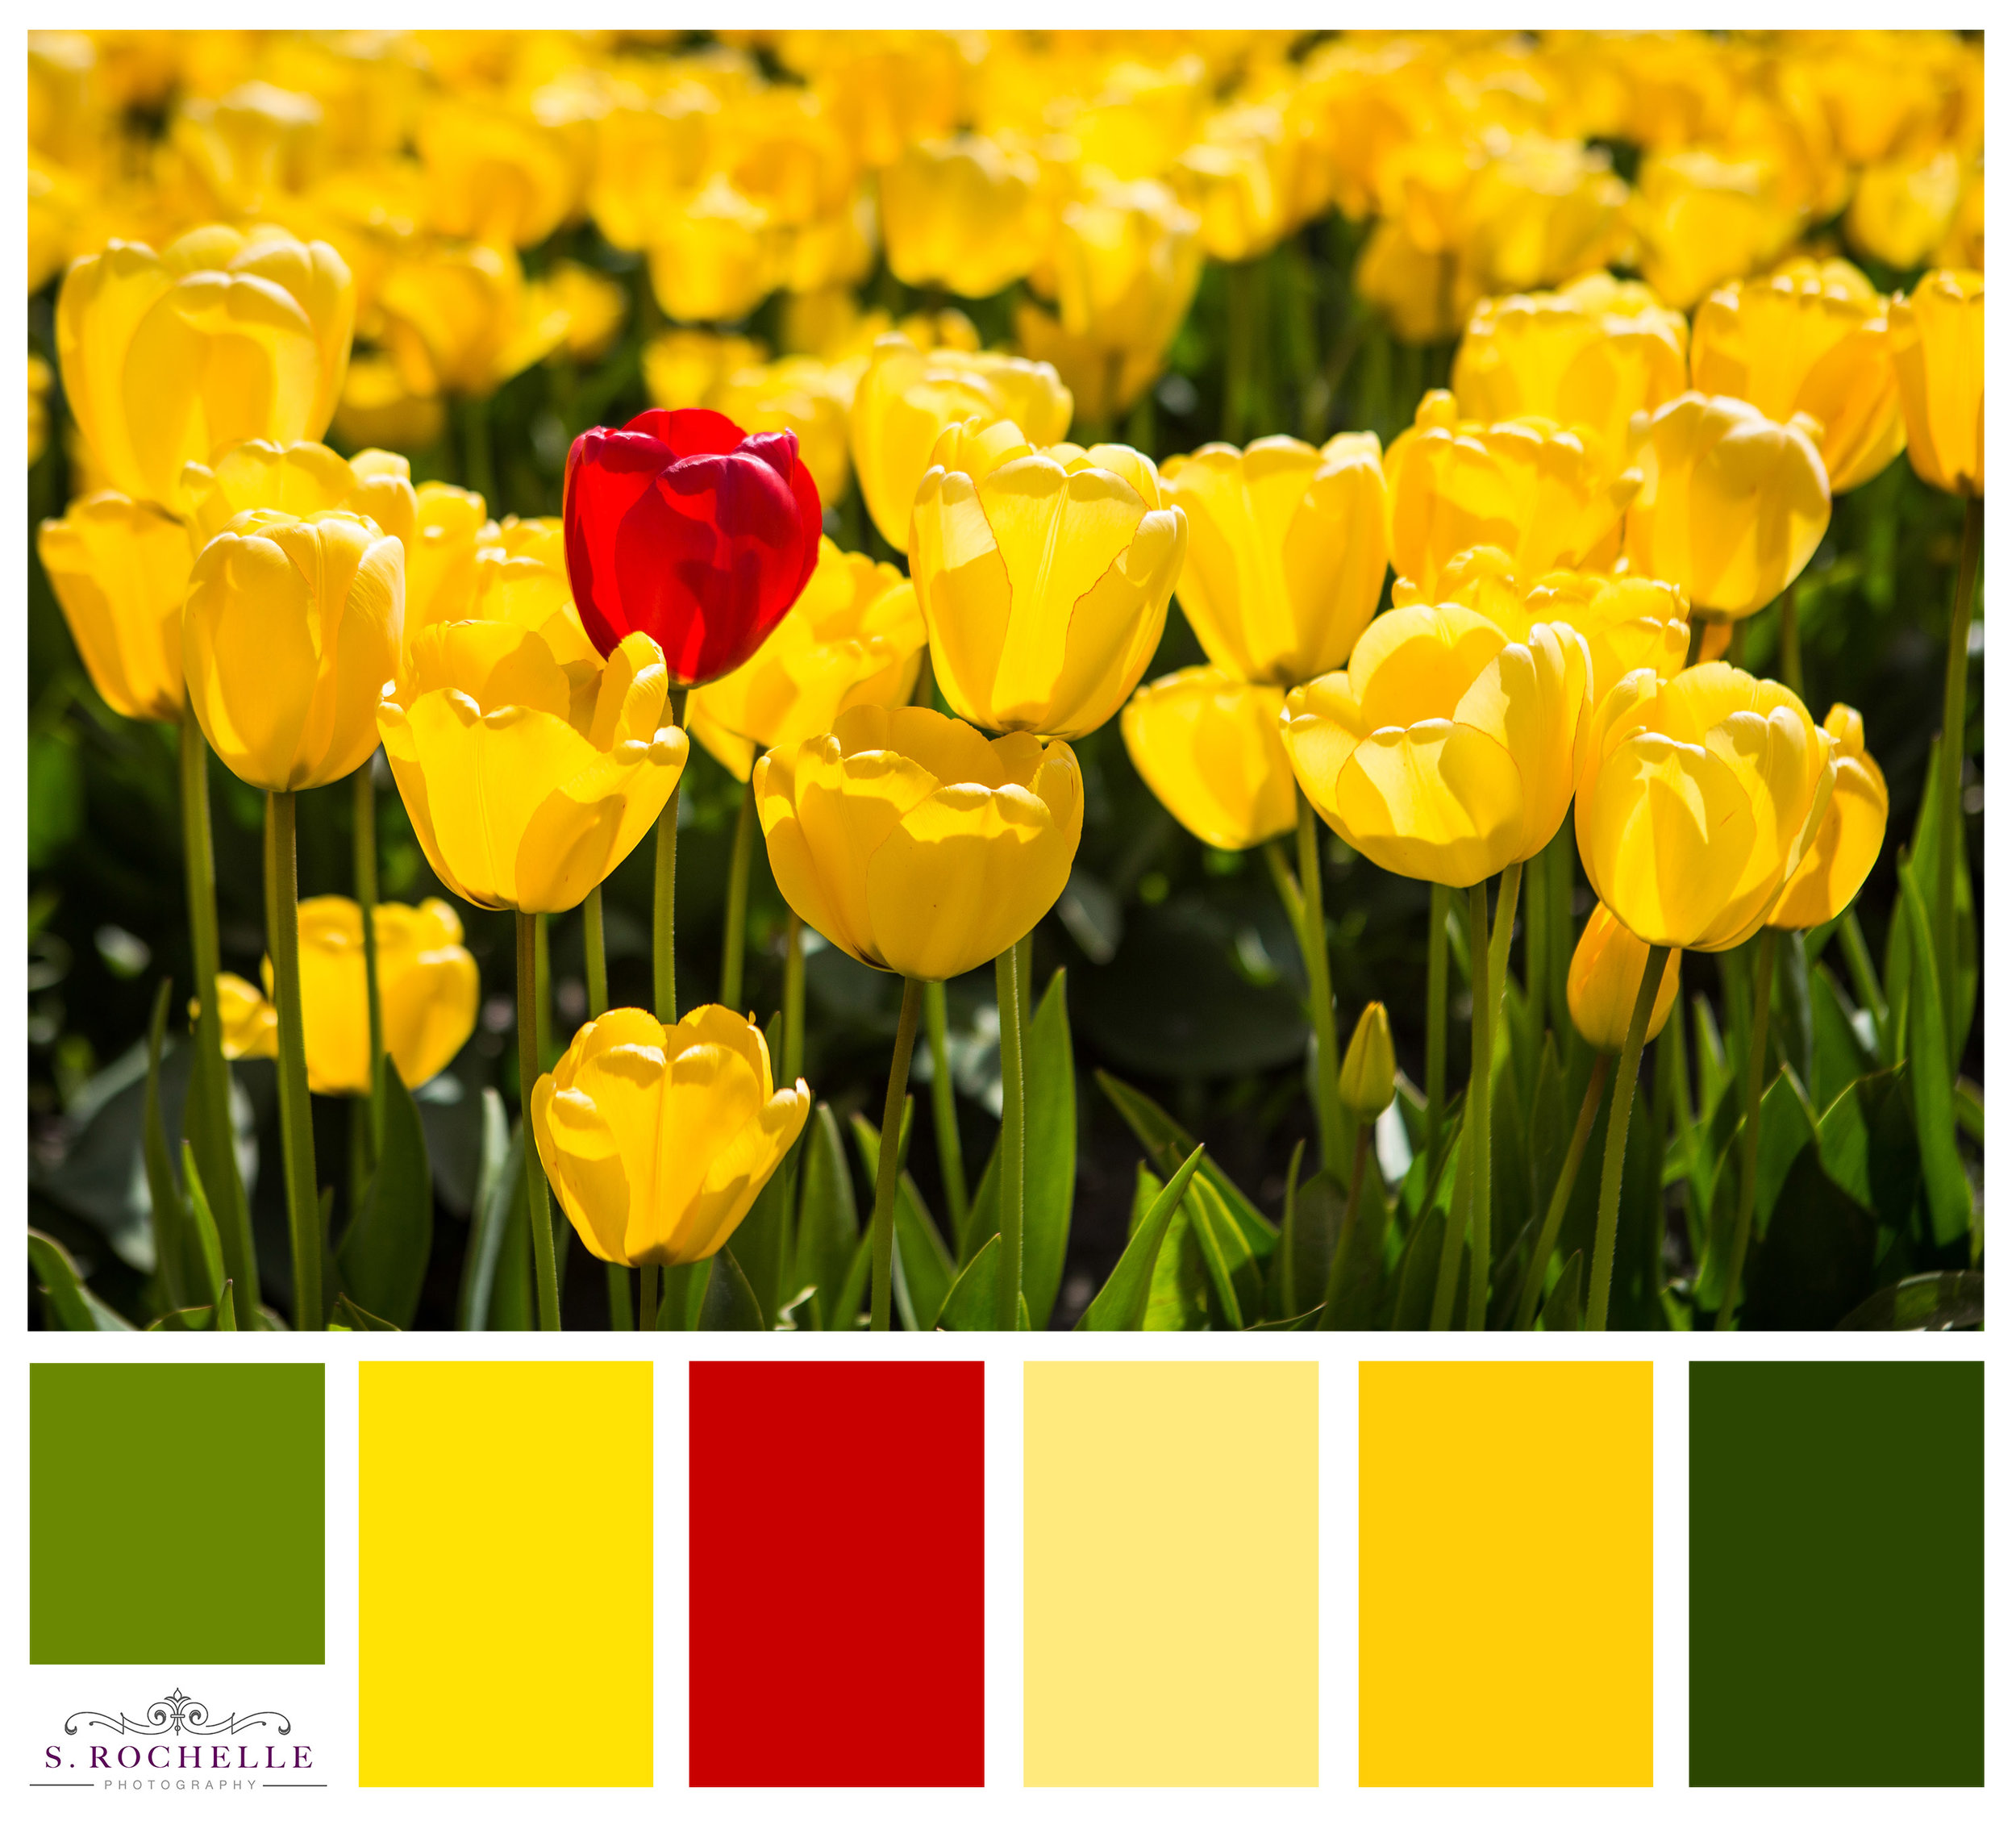 Tulips_S_Rochelle_Photography_20180422_IMG_0197_ColorPalette.jpg